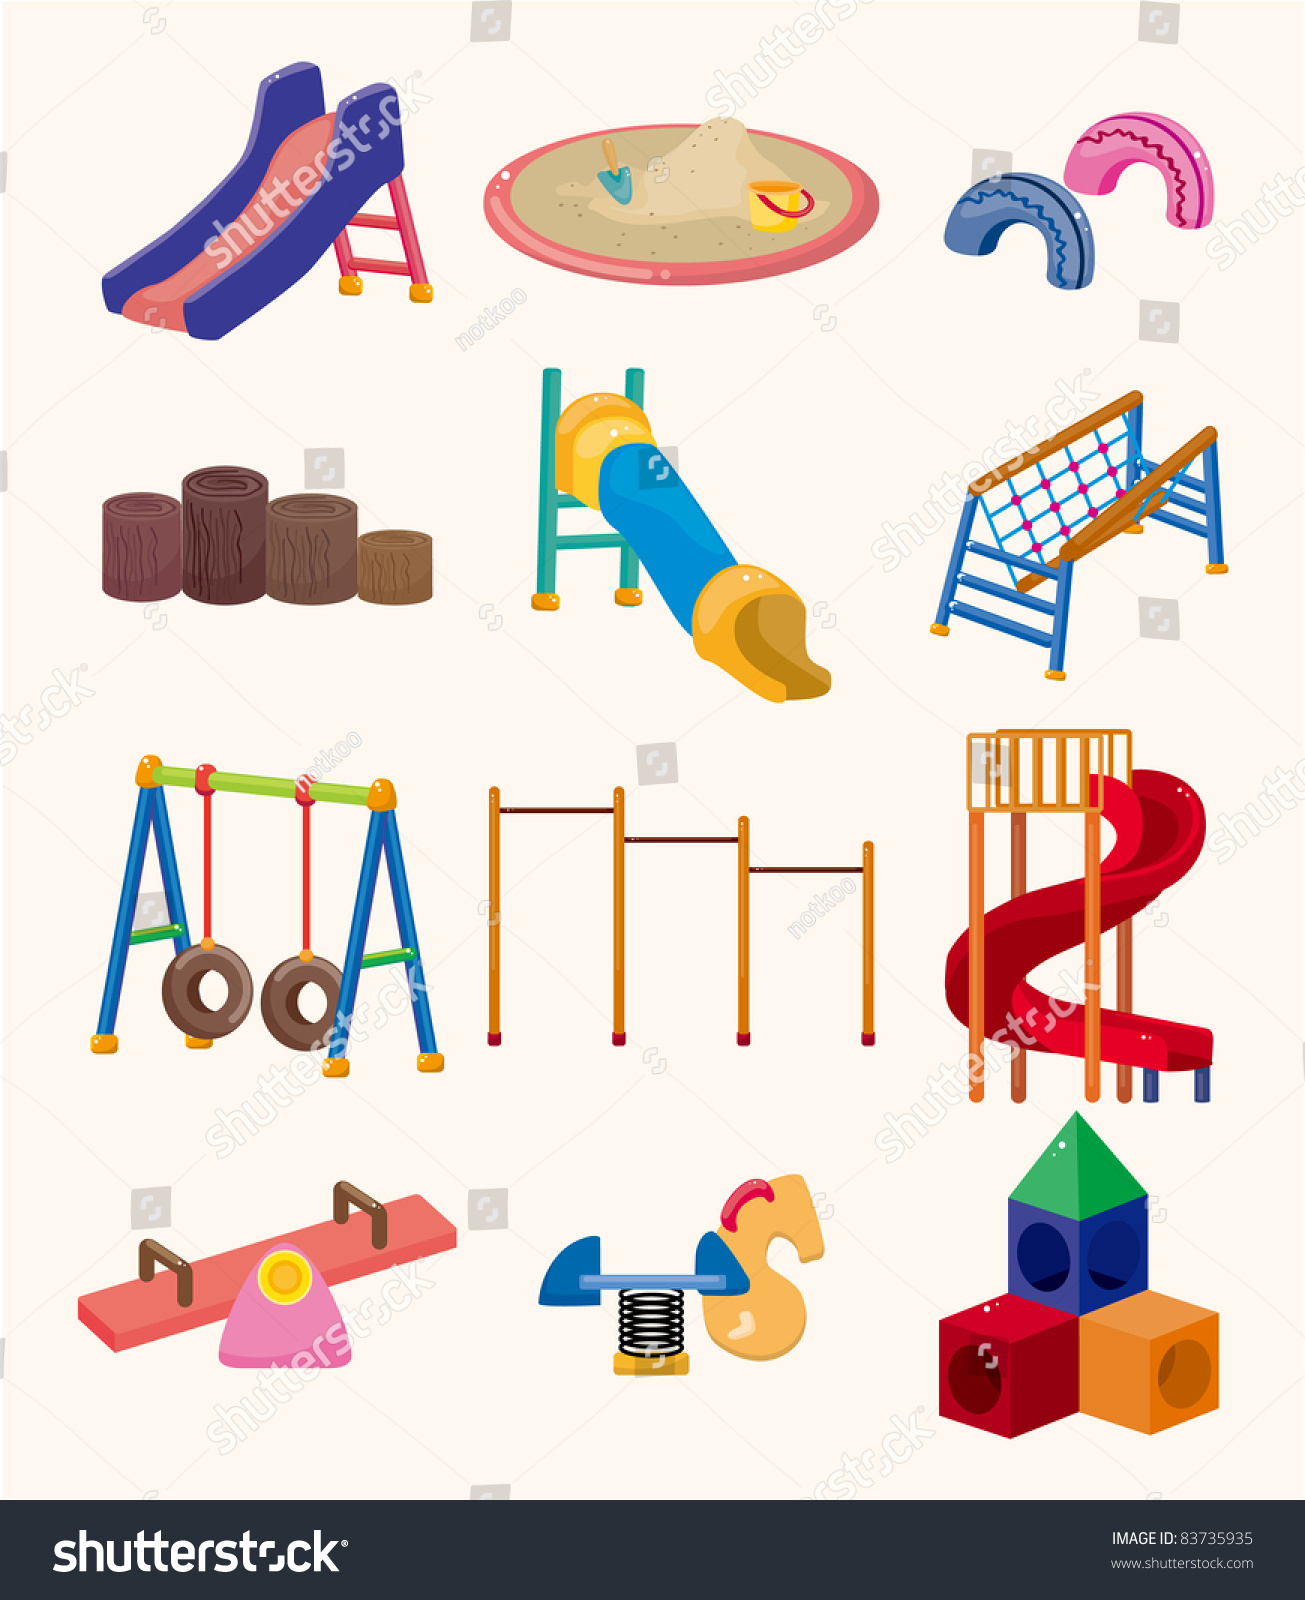 cartoon park playground icon stock vector 83735935 Outdoor Clip Art Black and White Outdoor Clip Art Black and White